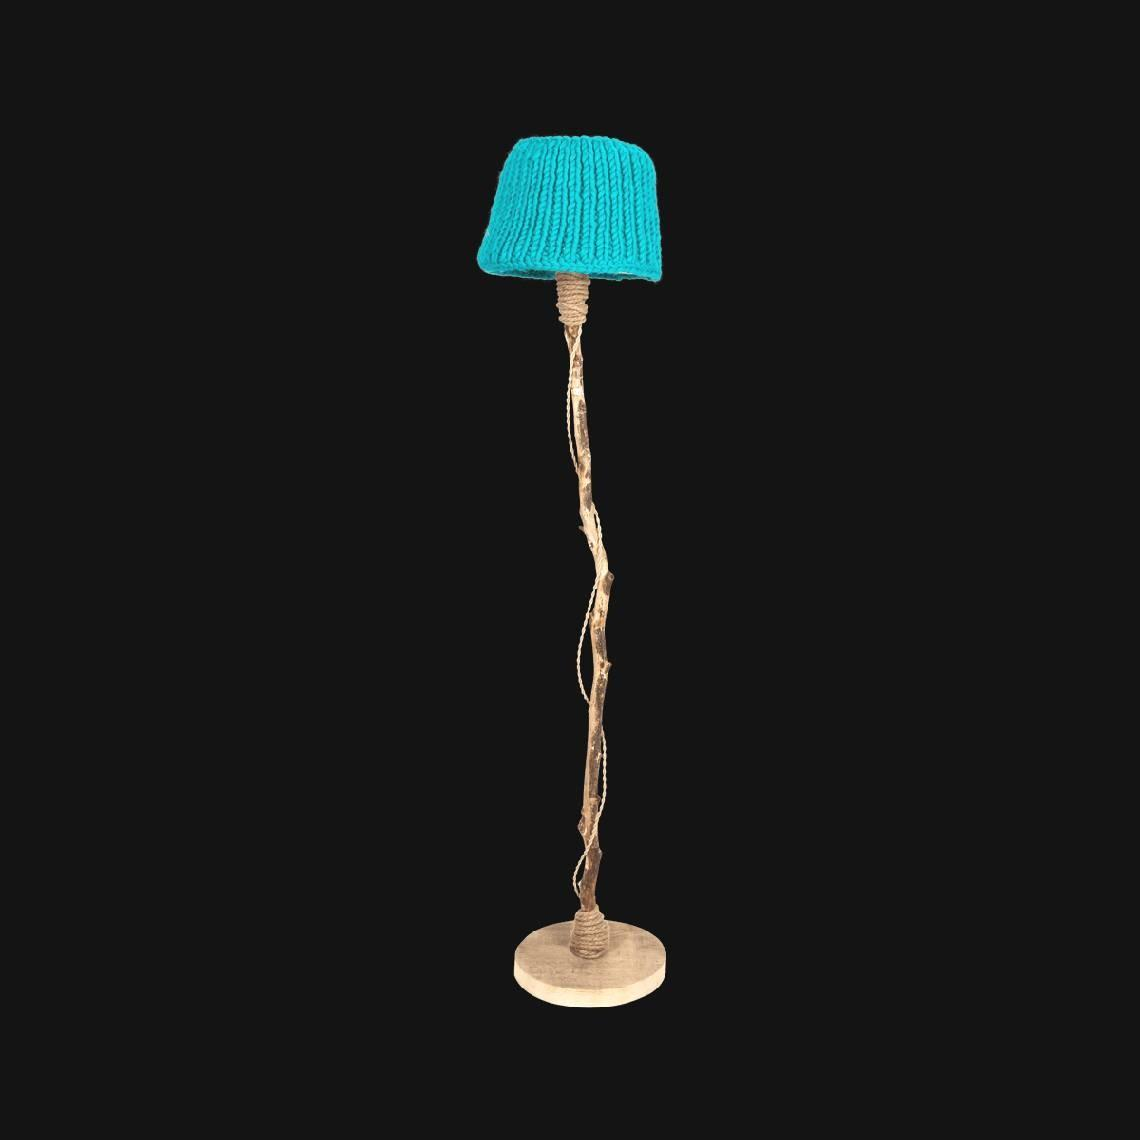 Small Modern Floor Lamps